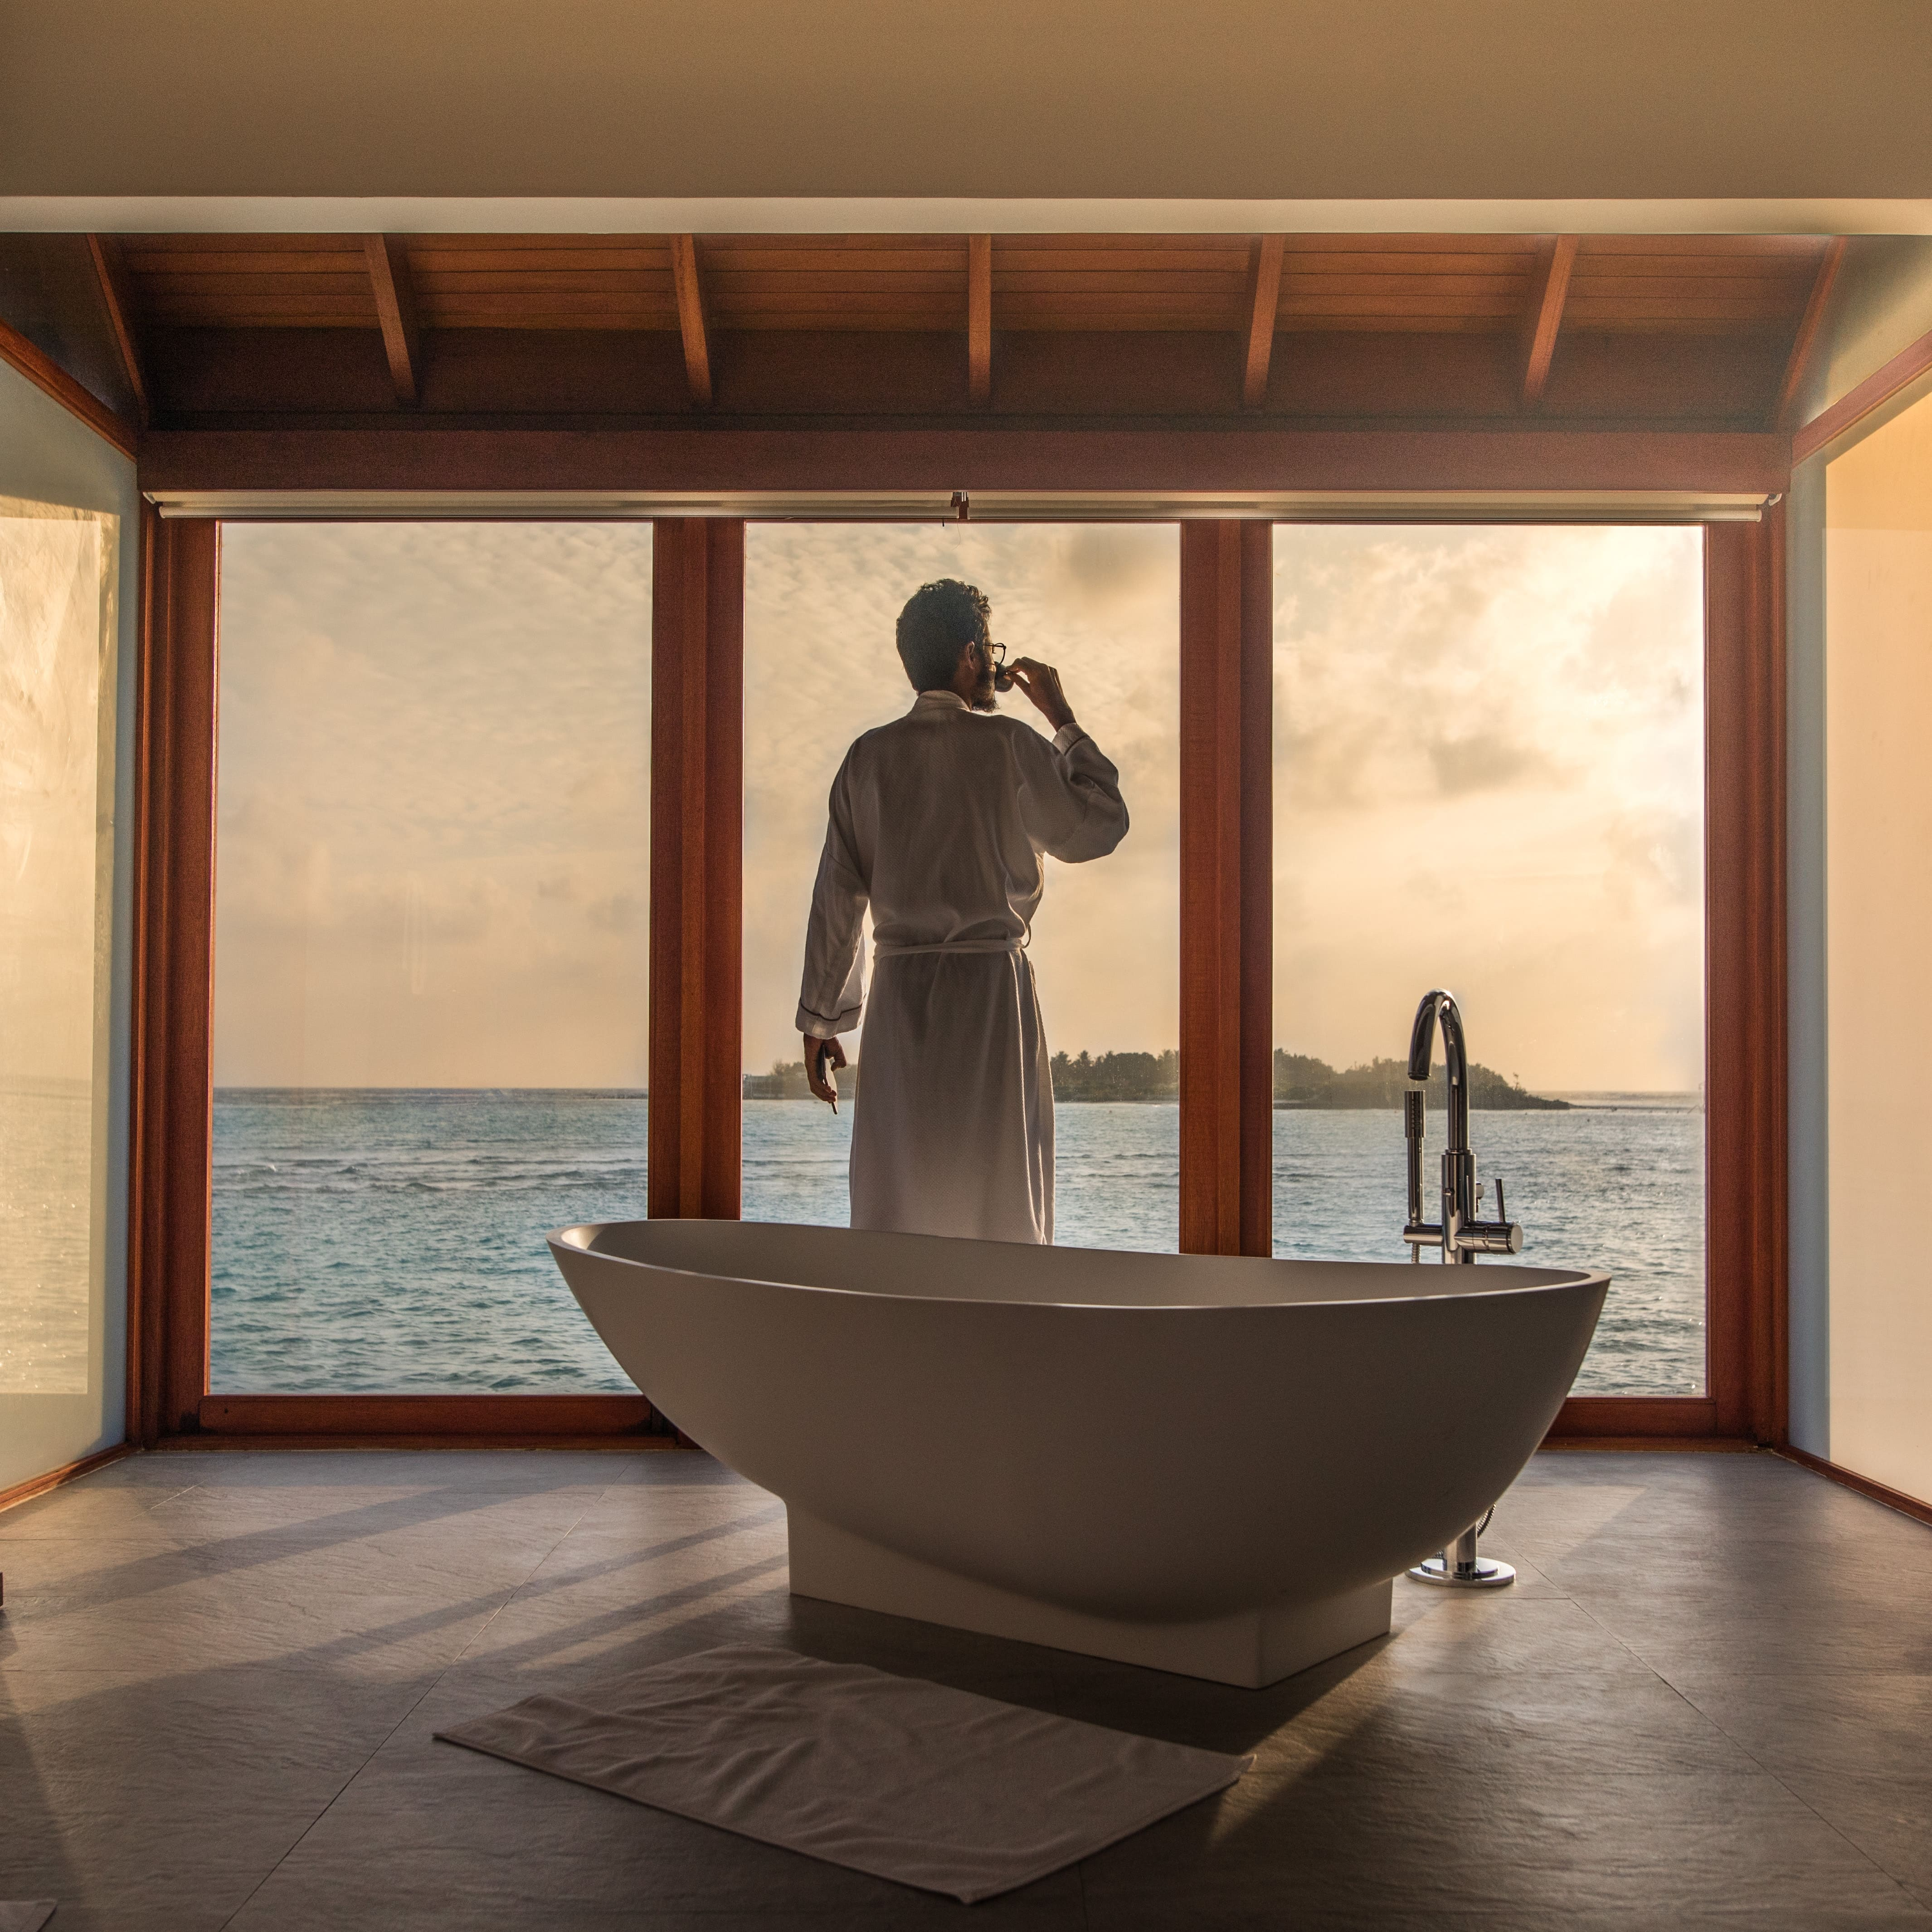 an image of a man in a robe drinking coffee next to a bathtub looking out over the ocean